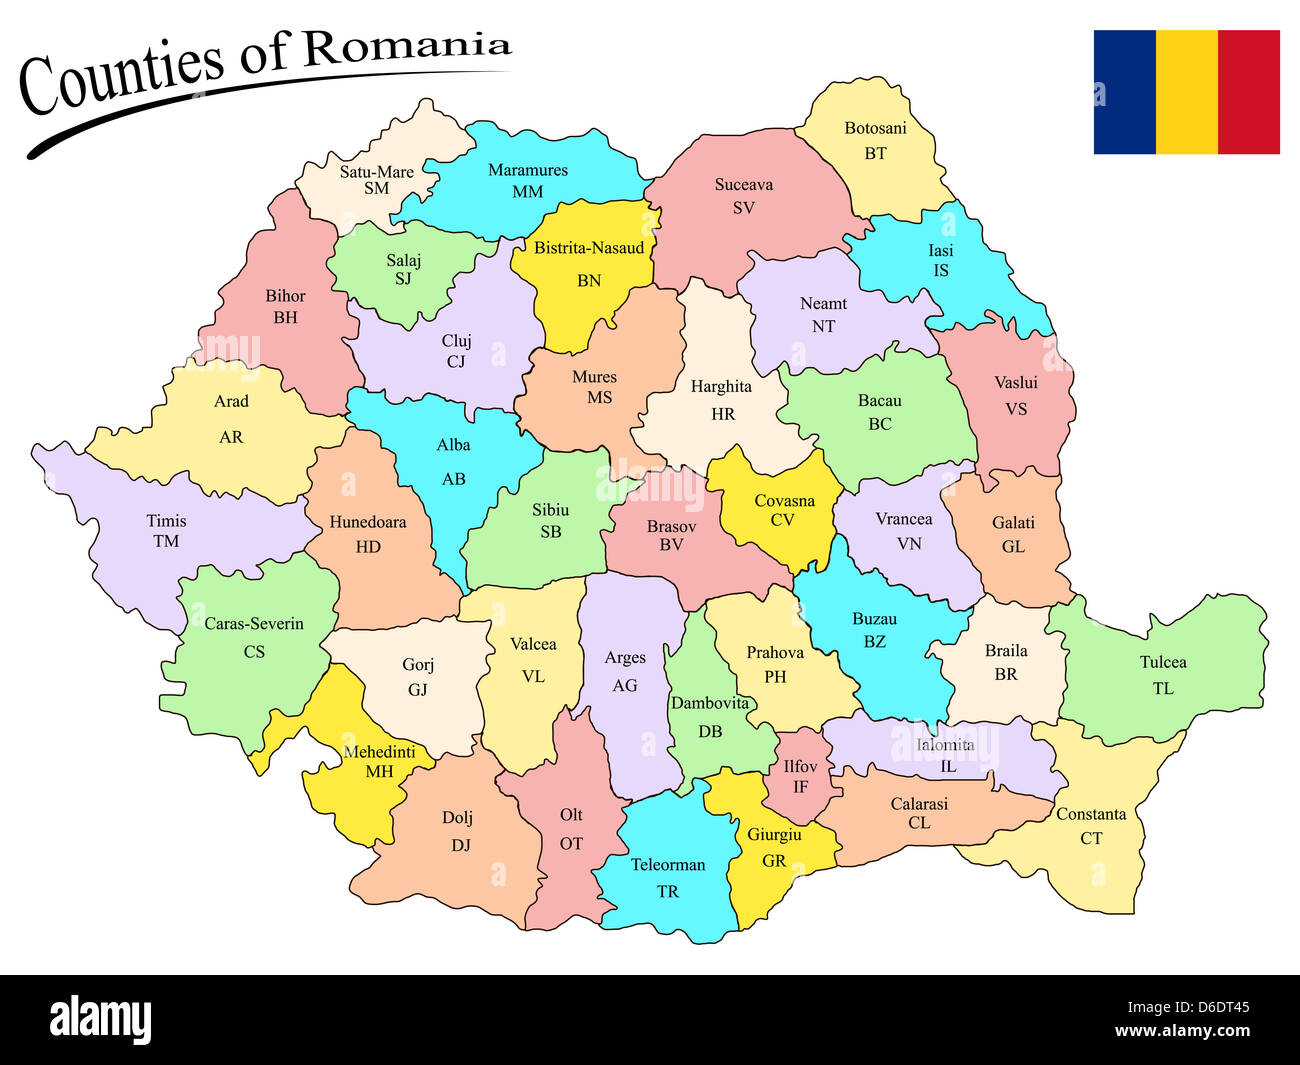 Bucharest Romania Europe Map Cut Out Stock Images & Pictures - Alamy